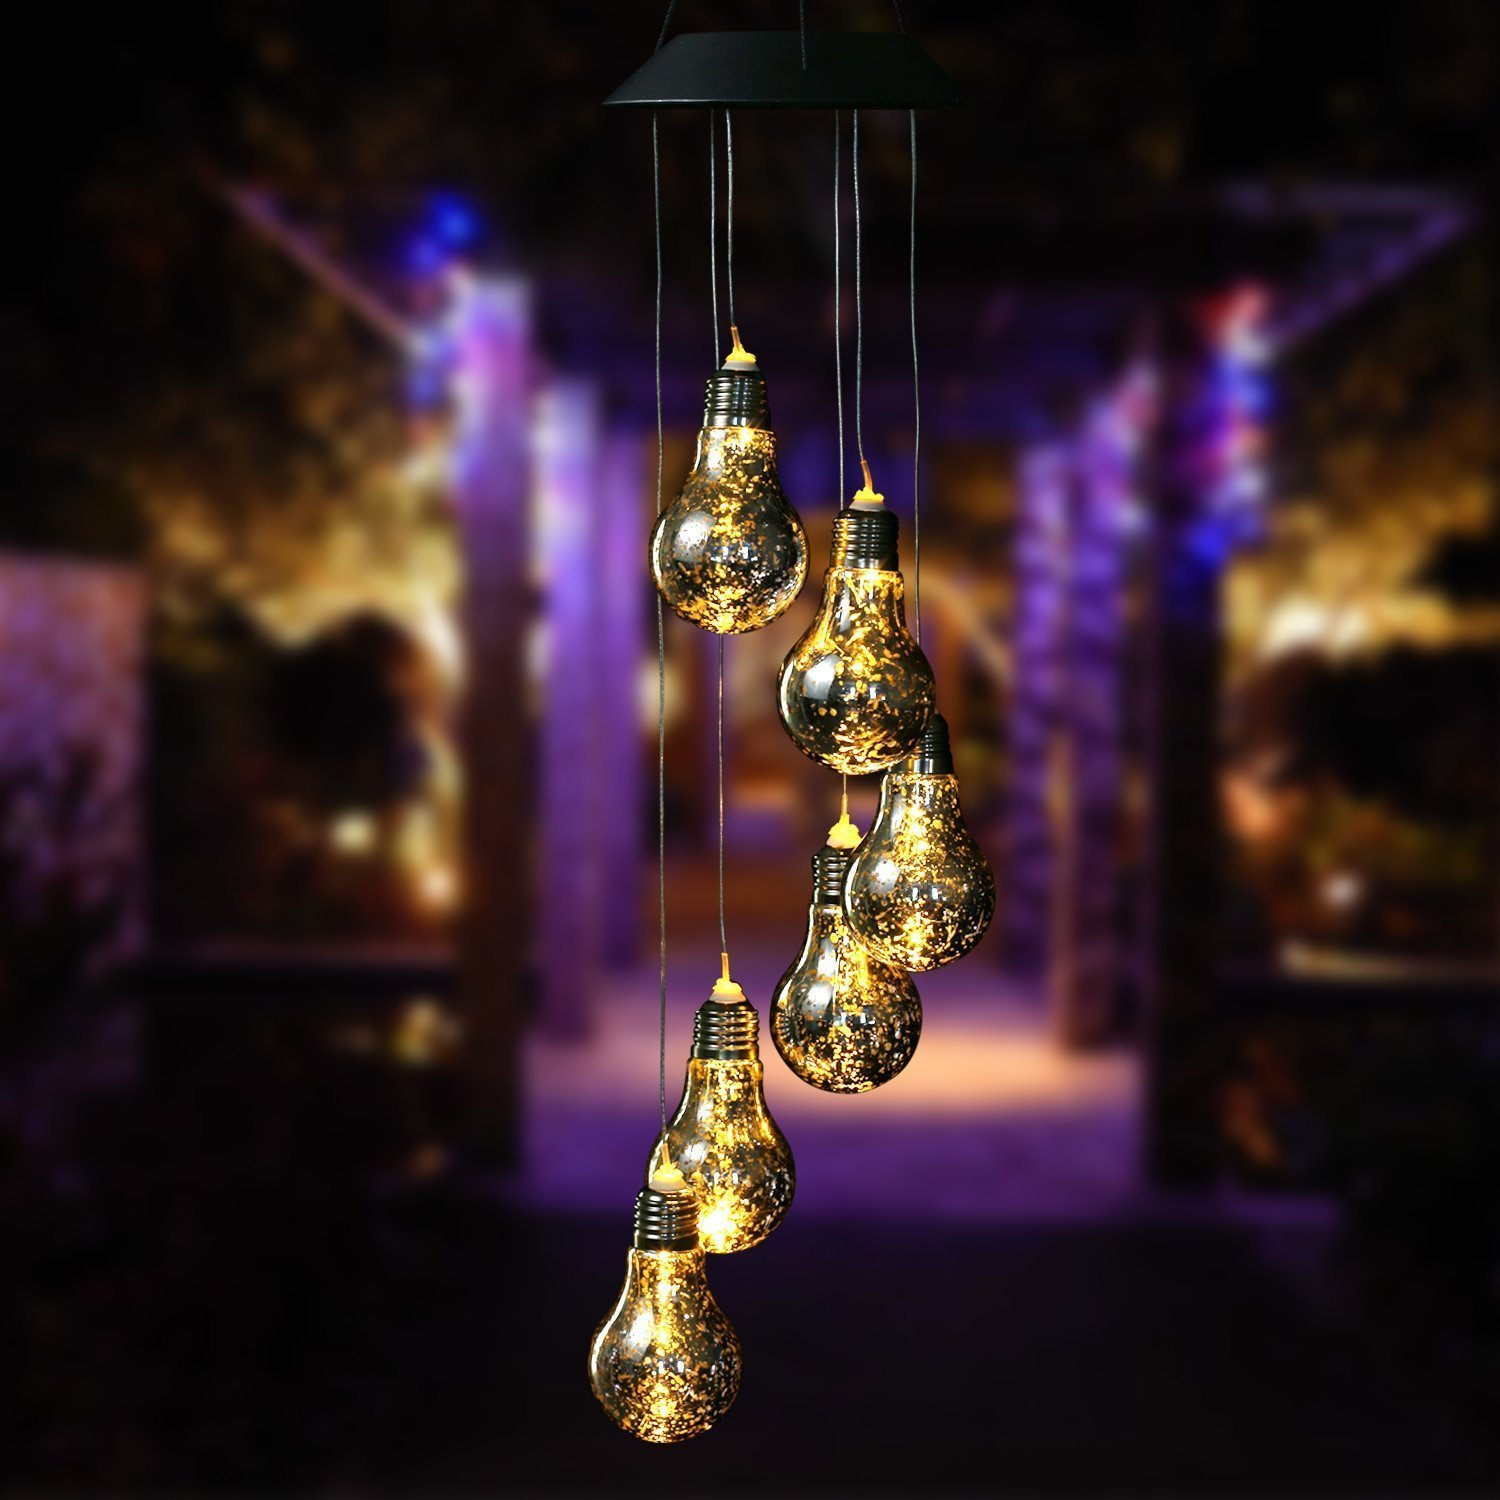 Bulb Solar Powered Mobile, Anzome Spiral Spinner Windchime Wind Chime Outdoor Decorative Windbell Light for Patio, Deck, Yard, Garden, Home, Pathway